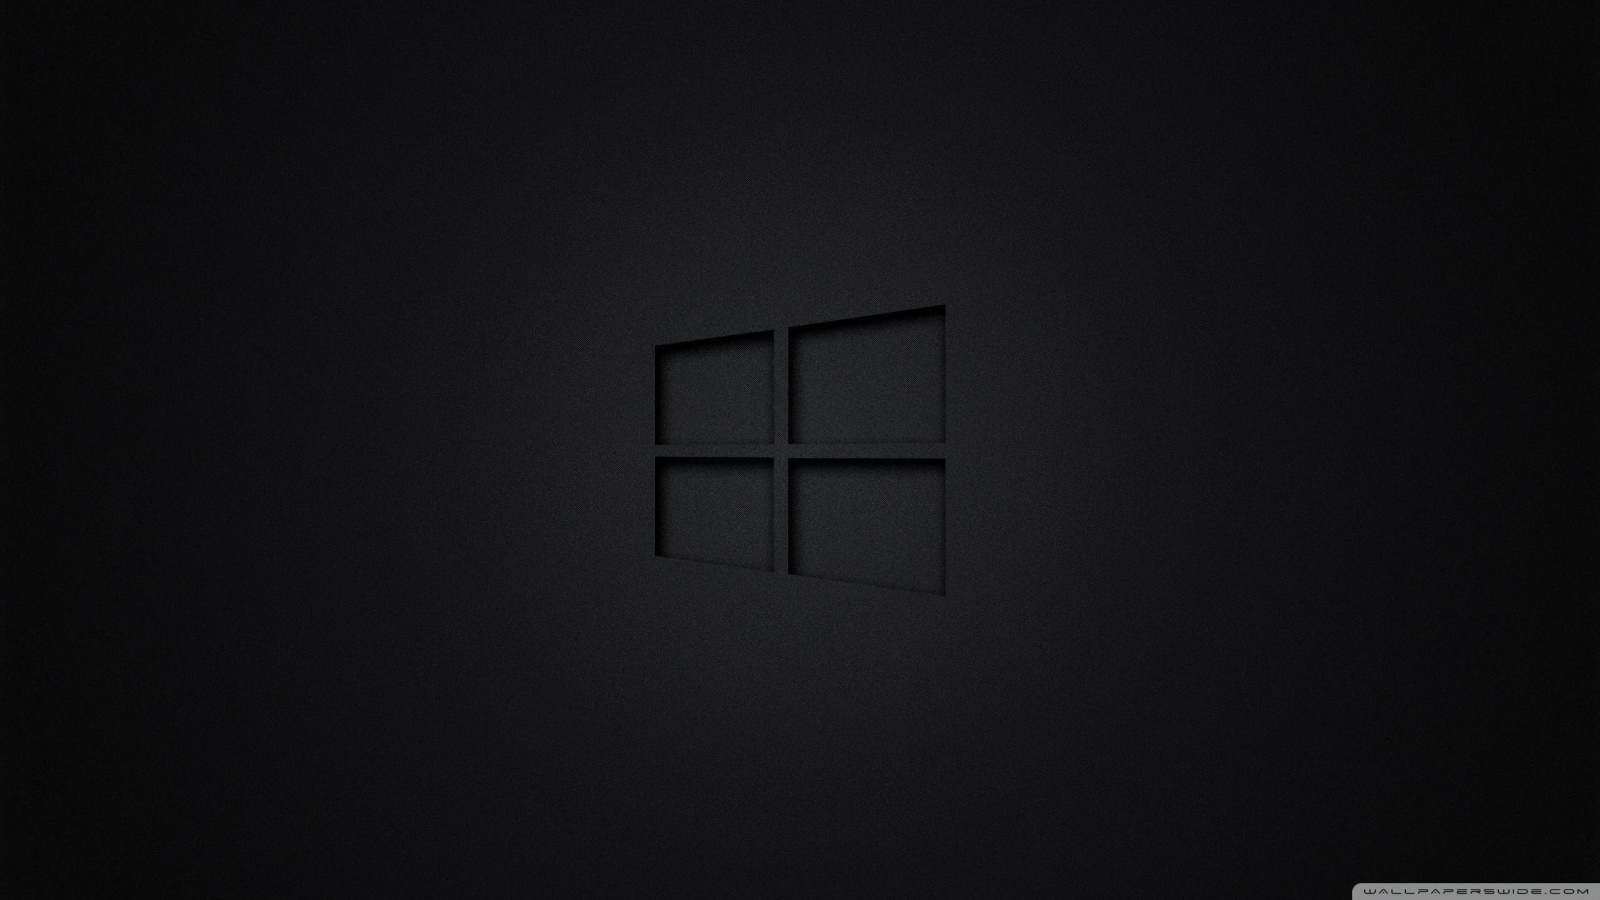 windows 10 black ❤ 4k hd desktop wallpaper for 4k ultra hd tv